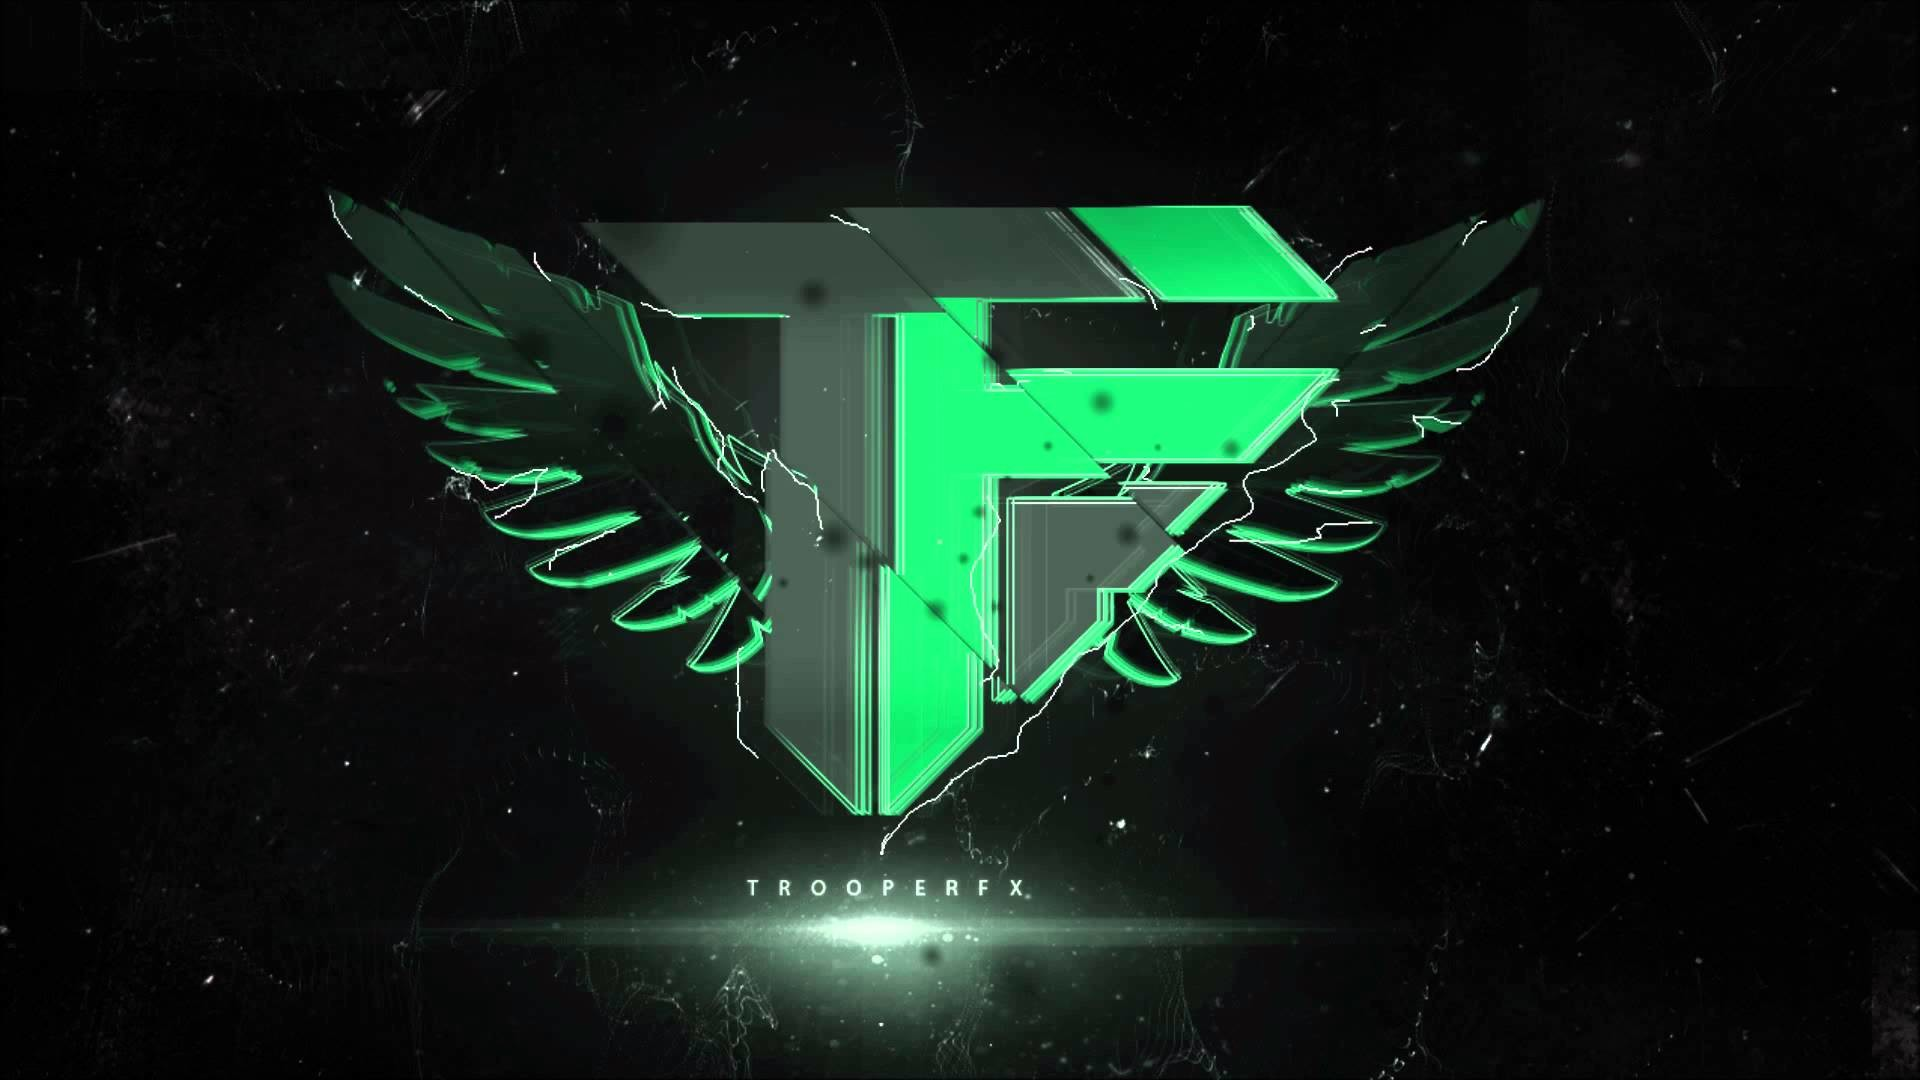 Beautiful faze clan logo wallpaper faze logo wallpaper the wallpaper buycottarizona